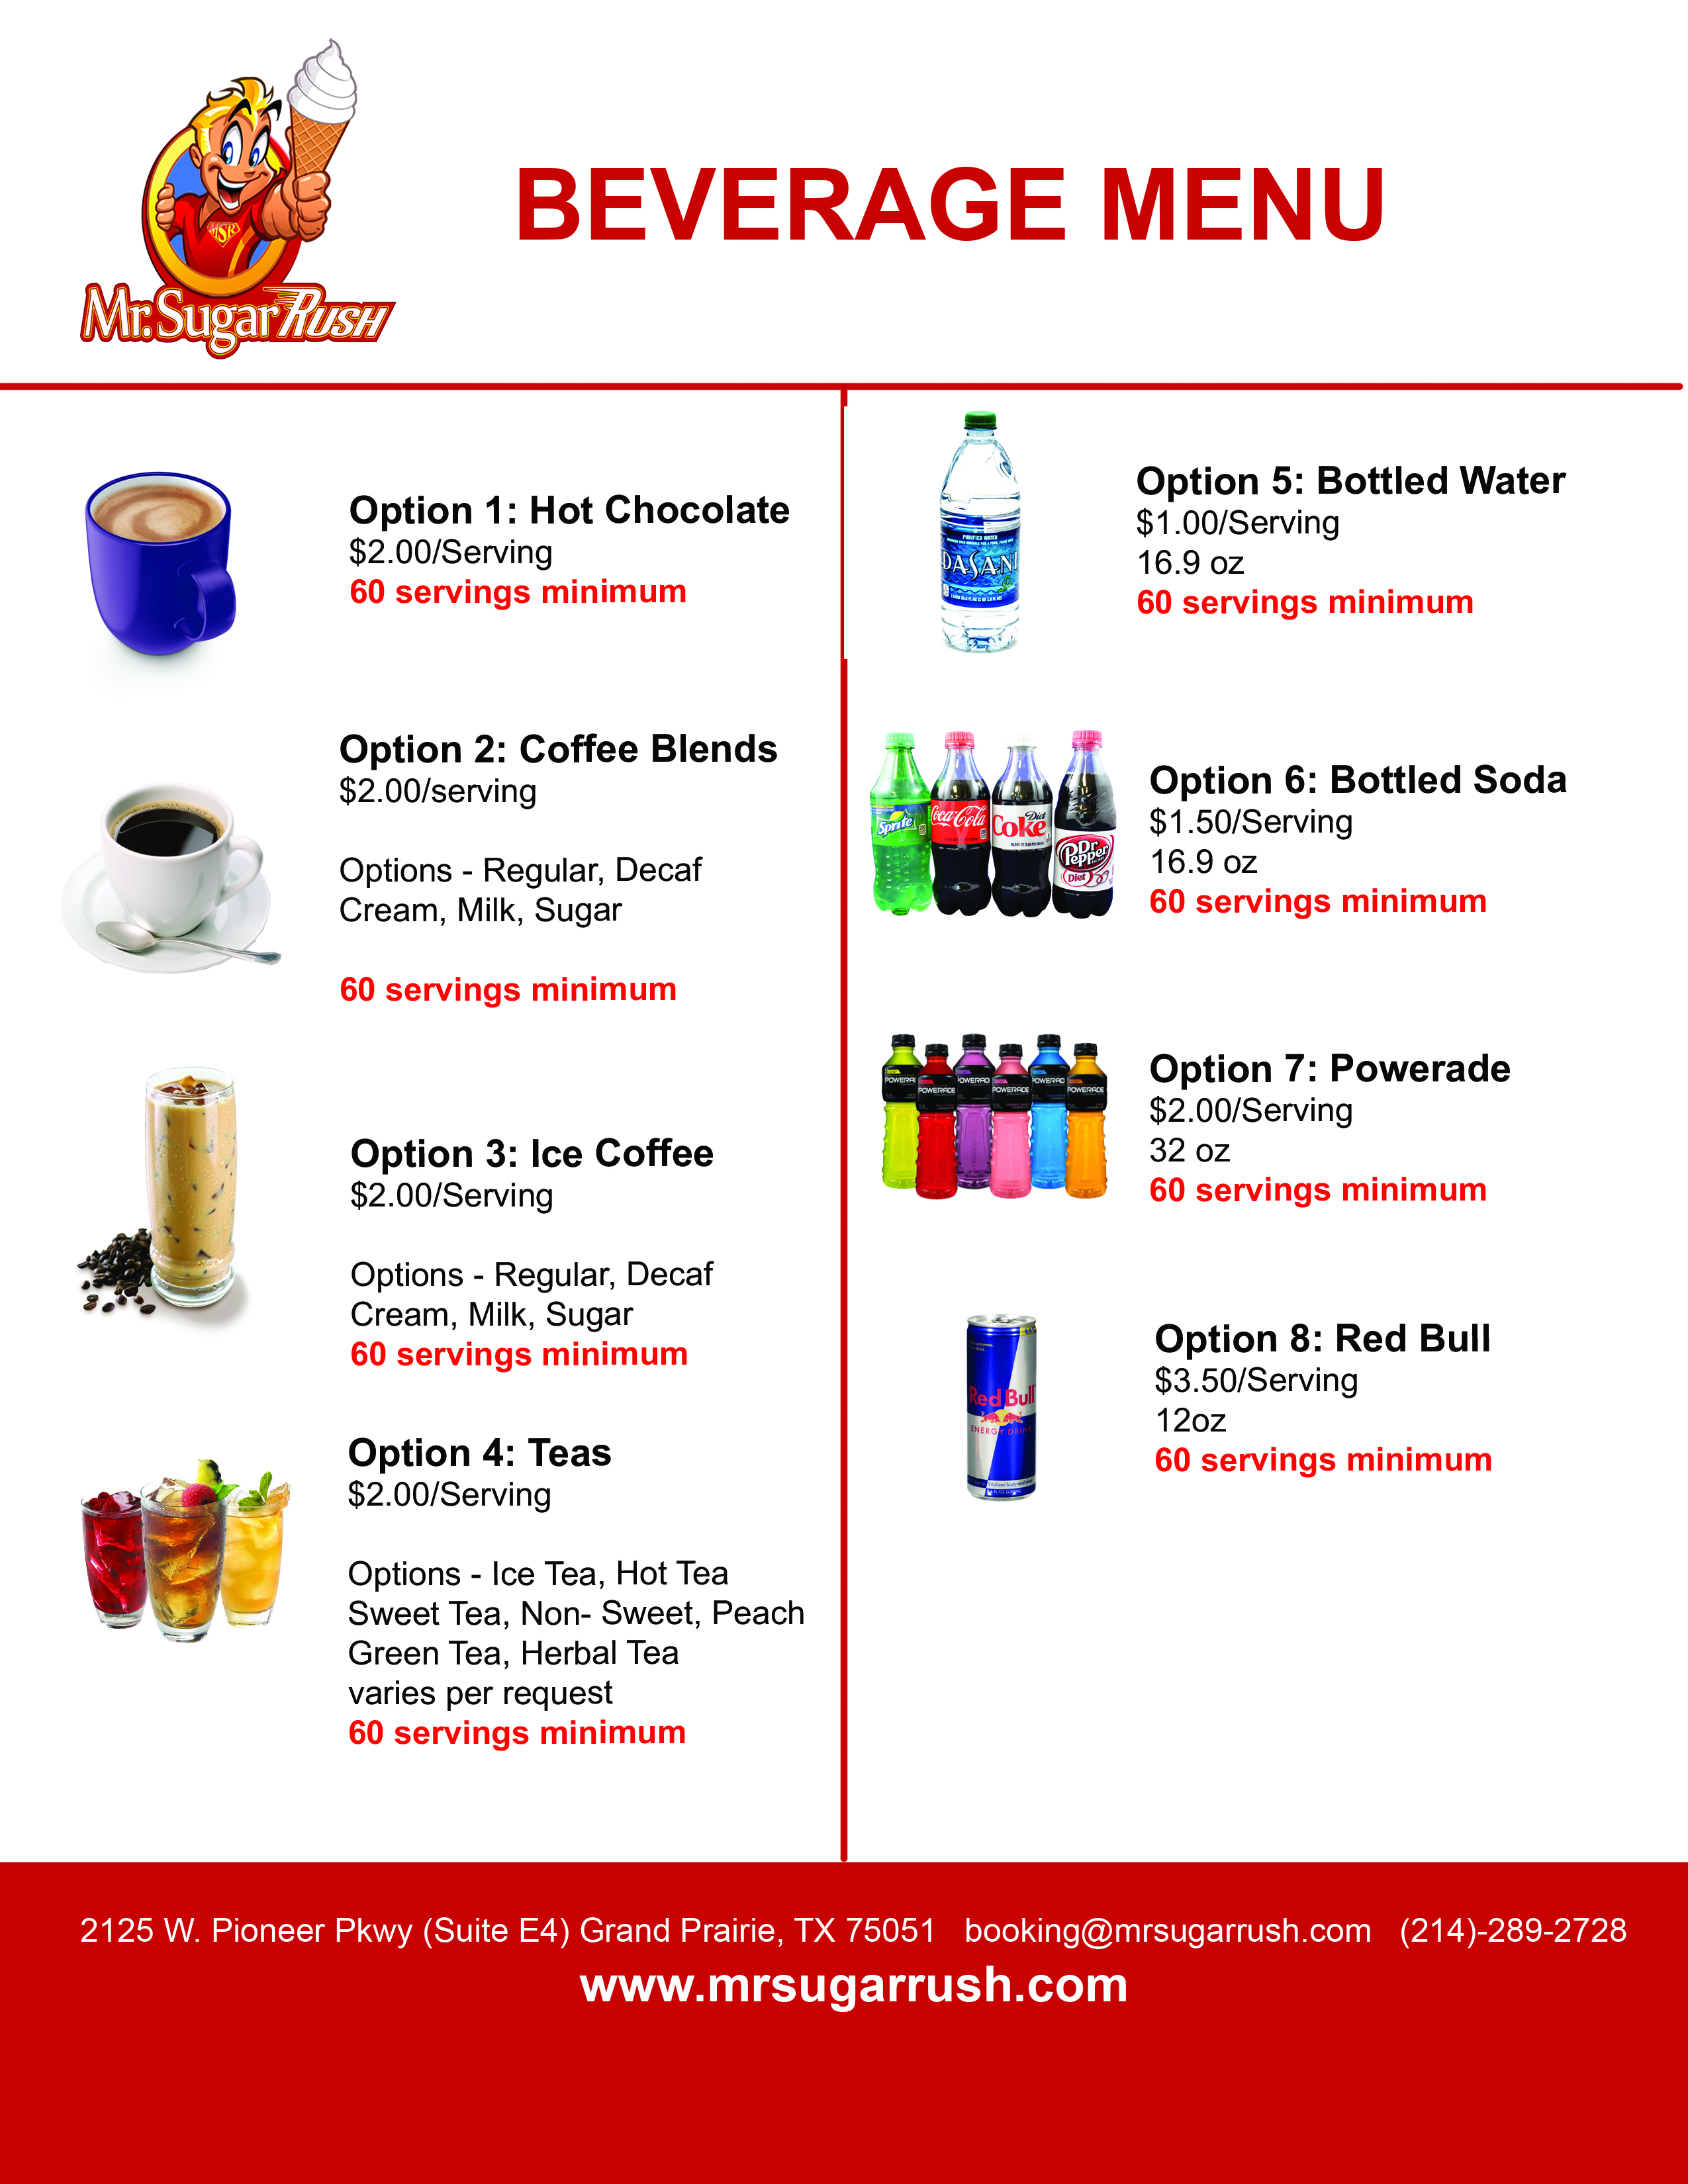 BEVERAGE MENU web